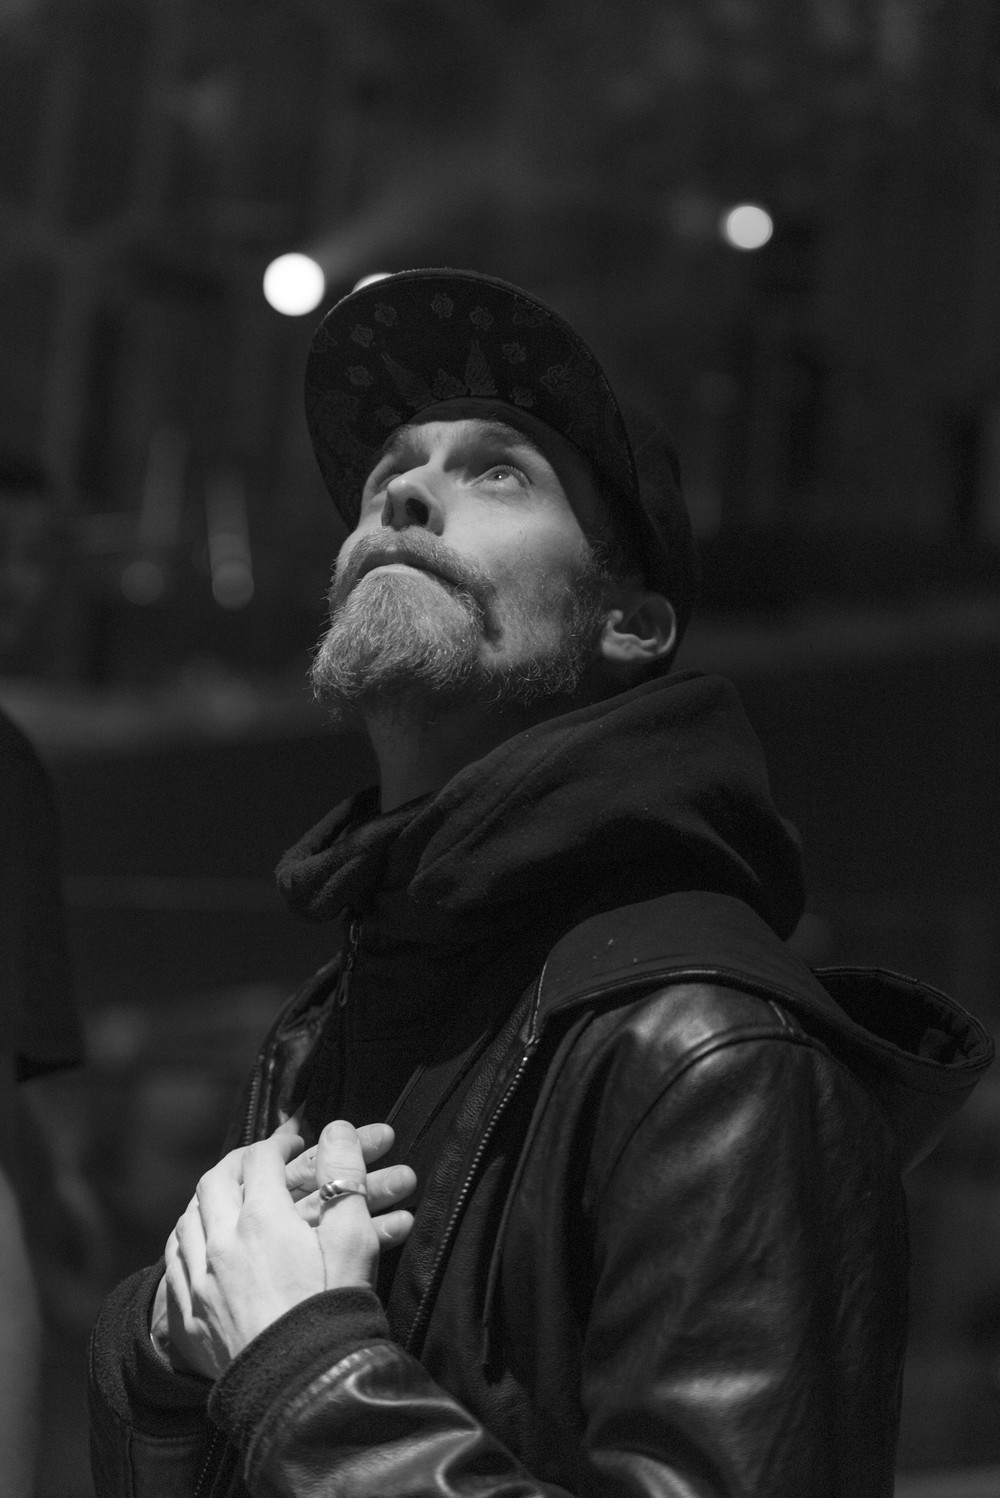 Sonar Reykjavik Iceland Black and White Portraits-9.jpg